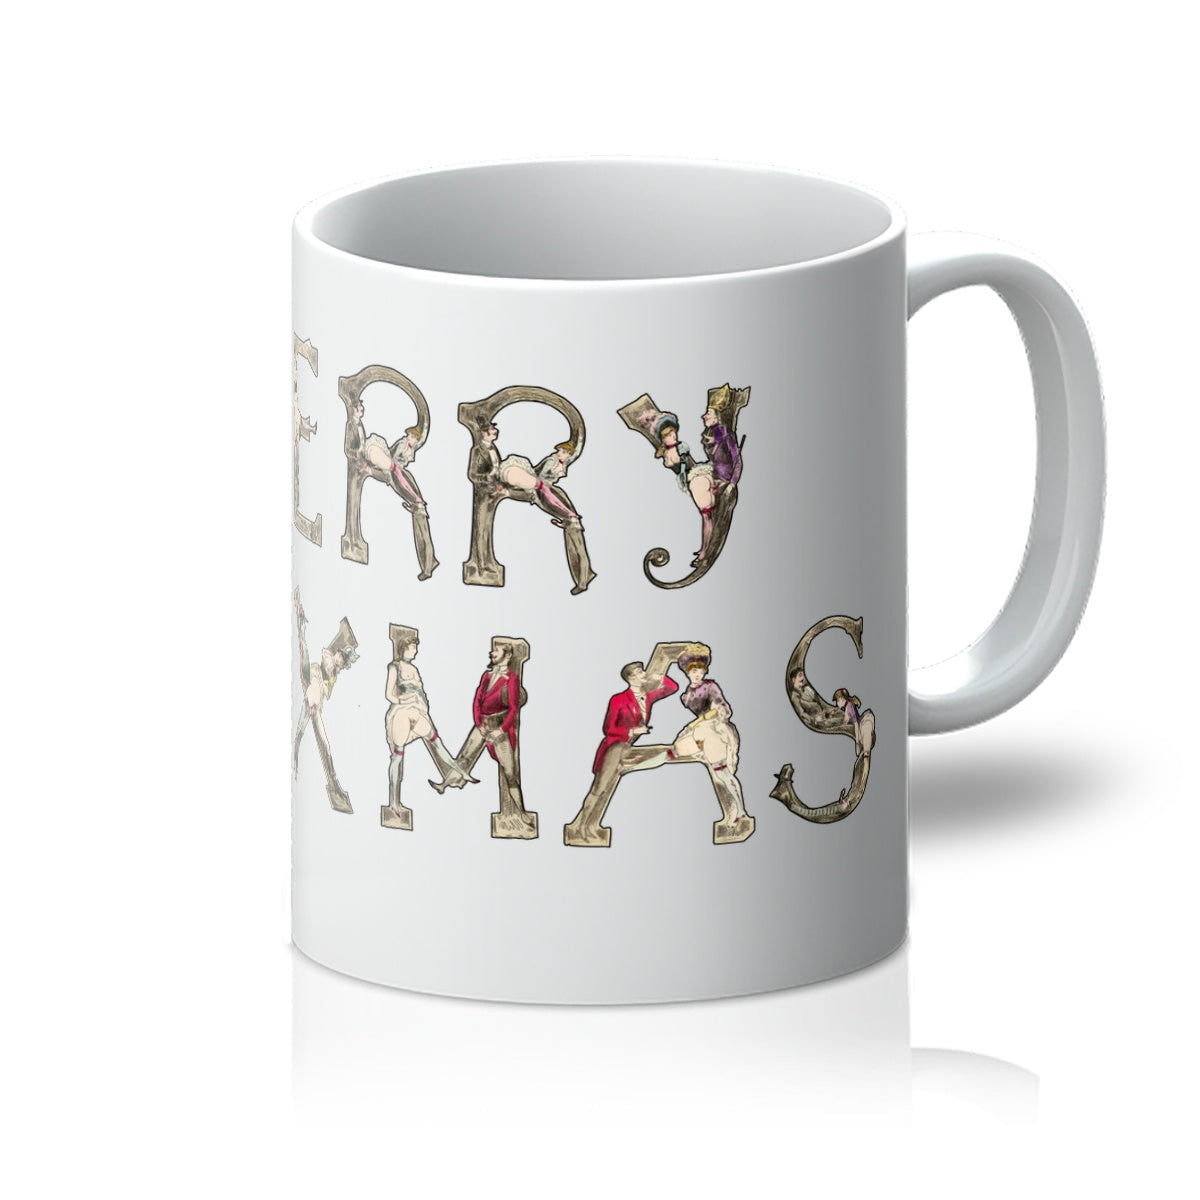 Merry XXXMas mug featuring letters from Joseph Apoux's erotic alphabet of 18